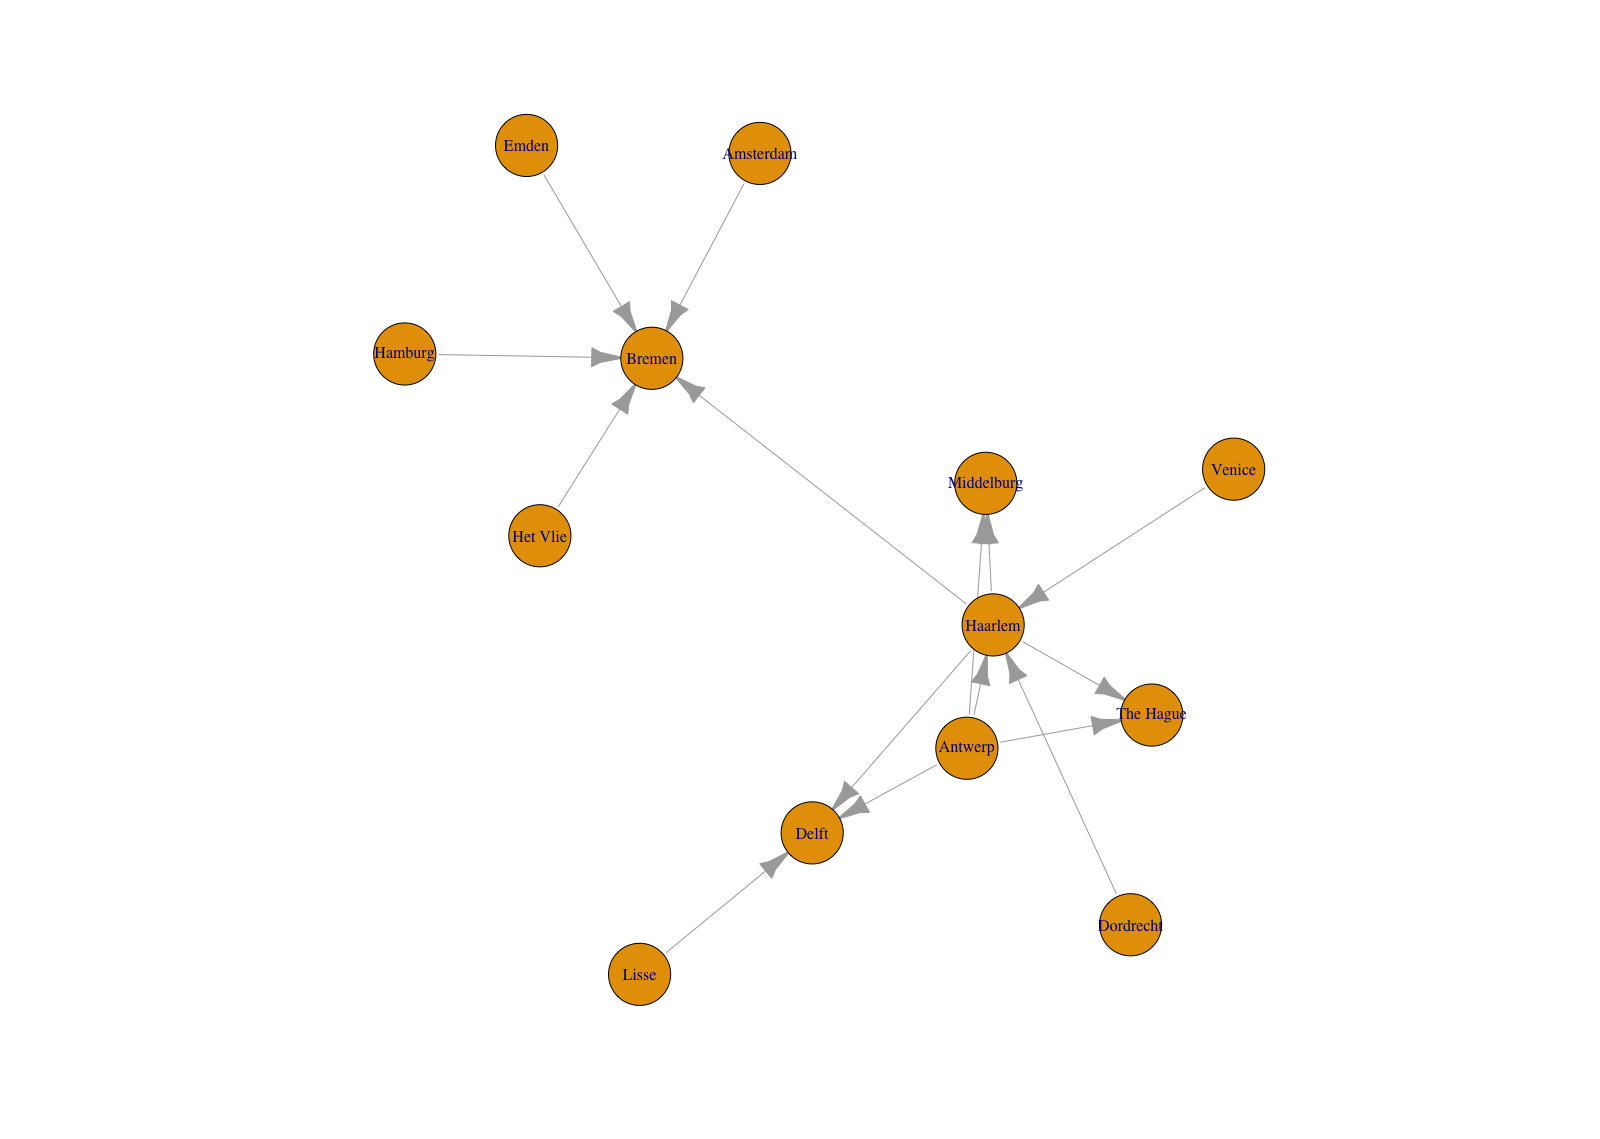 Introduction to Network Analysis with R